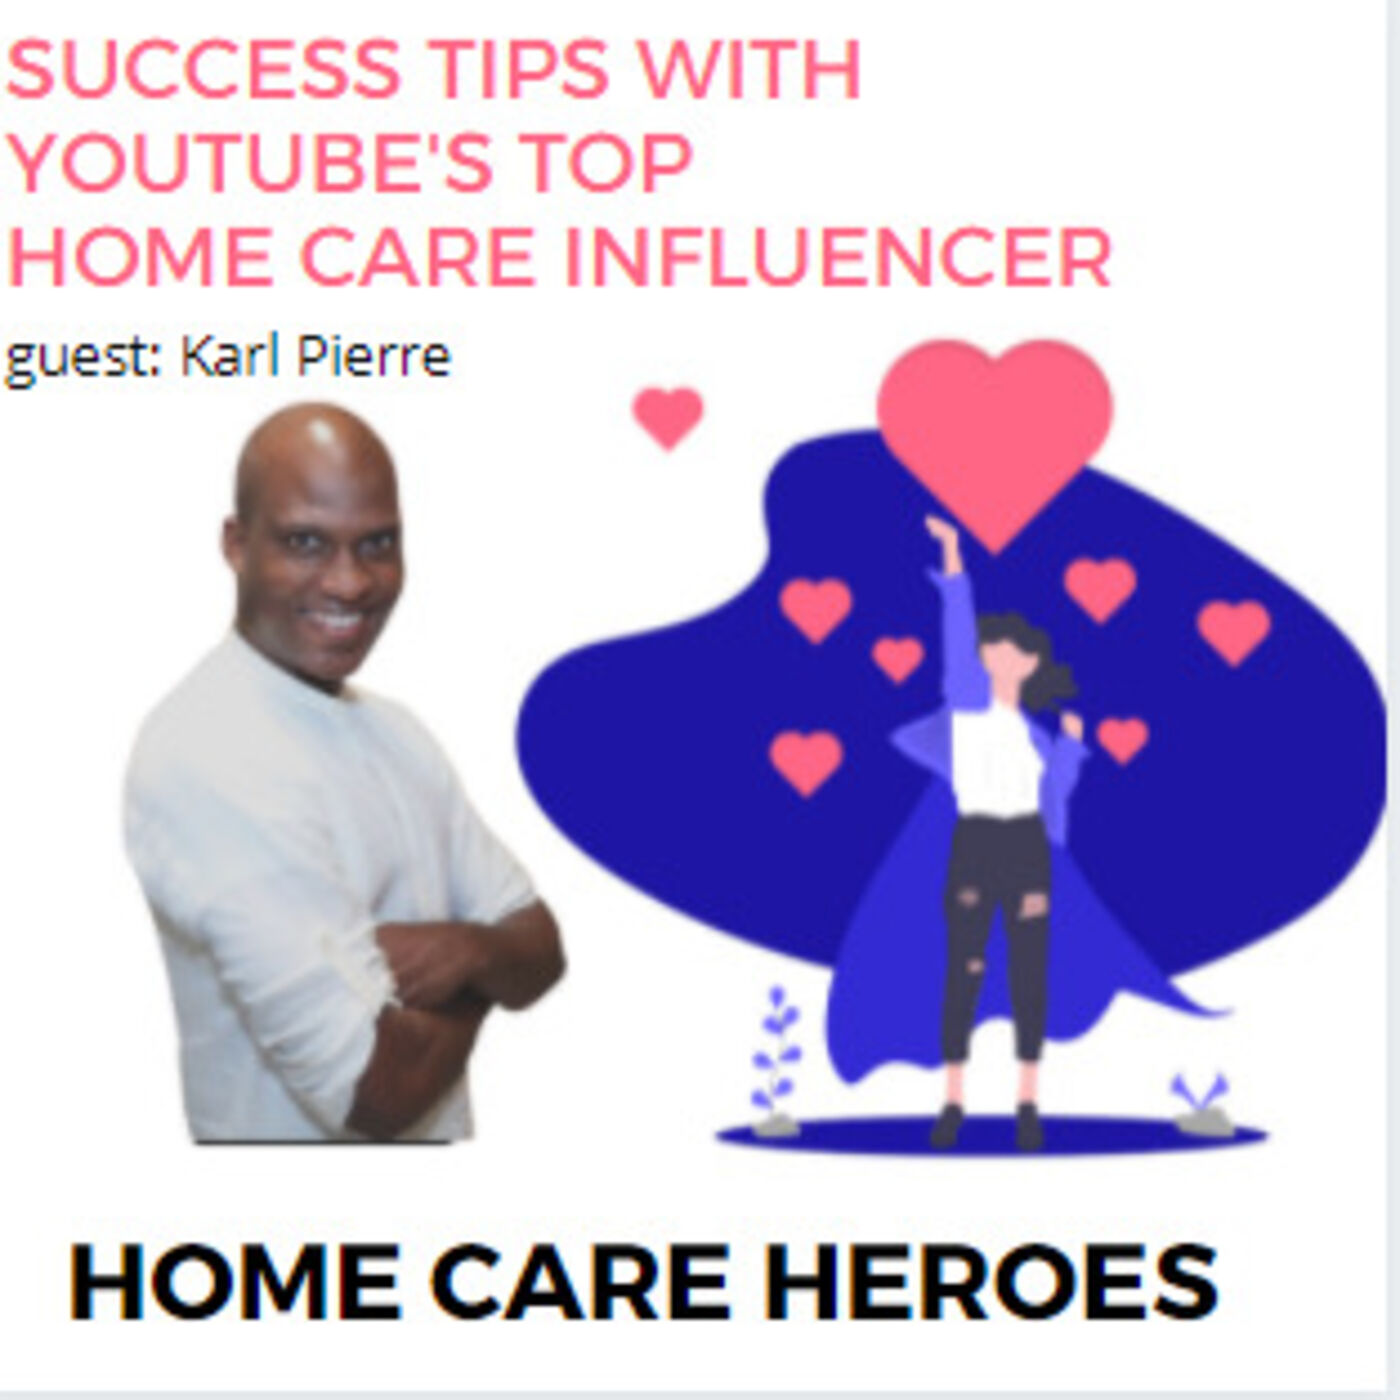 Success Tips with Youtube's Top Home Care Influencer - Karl Pierre (rebroadcast)